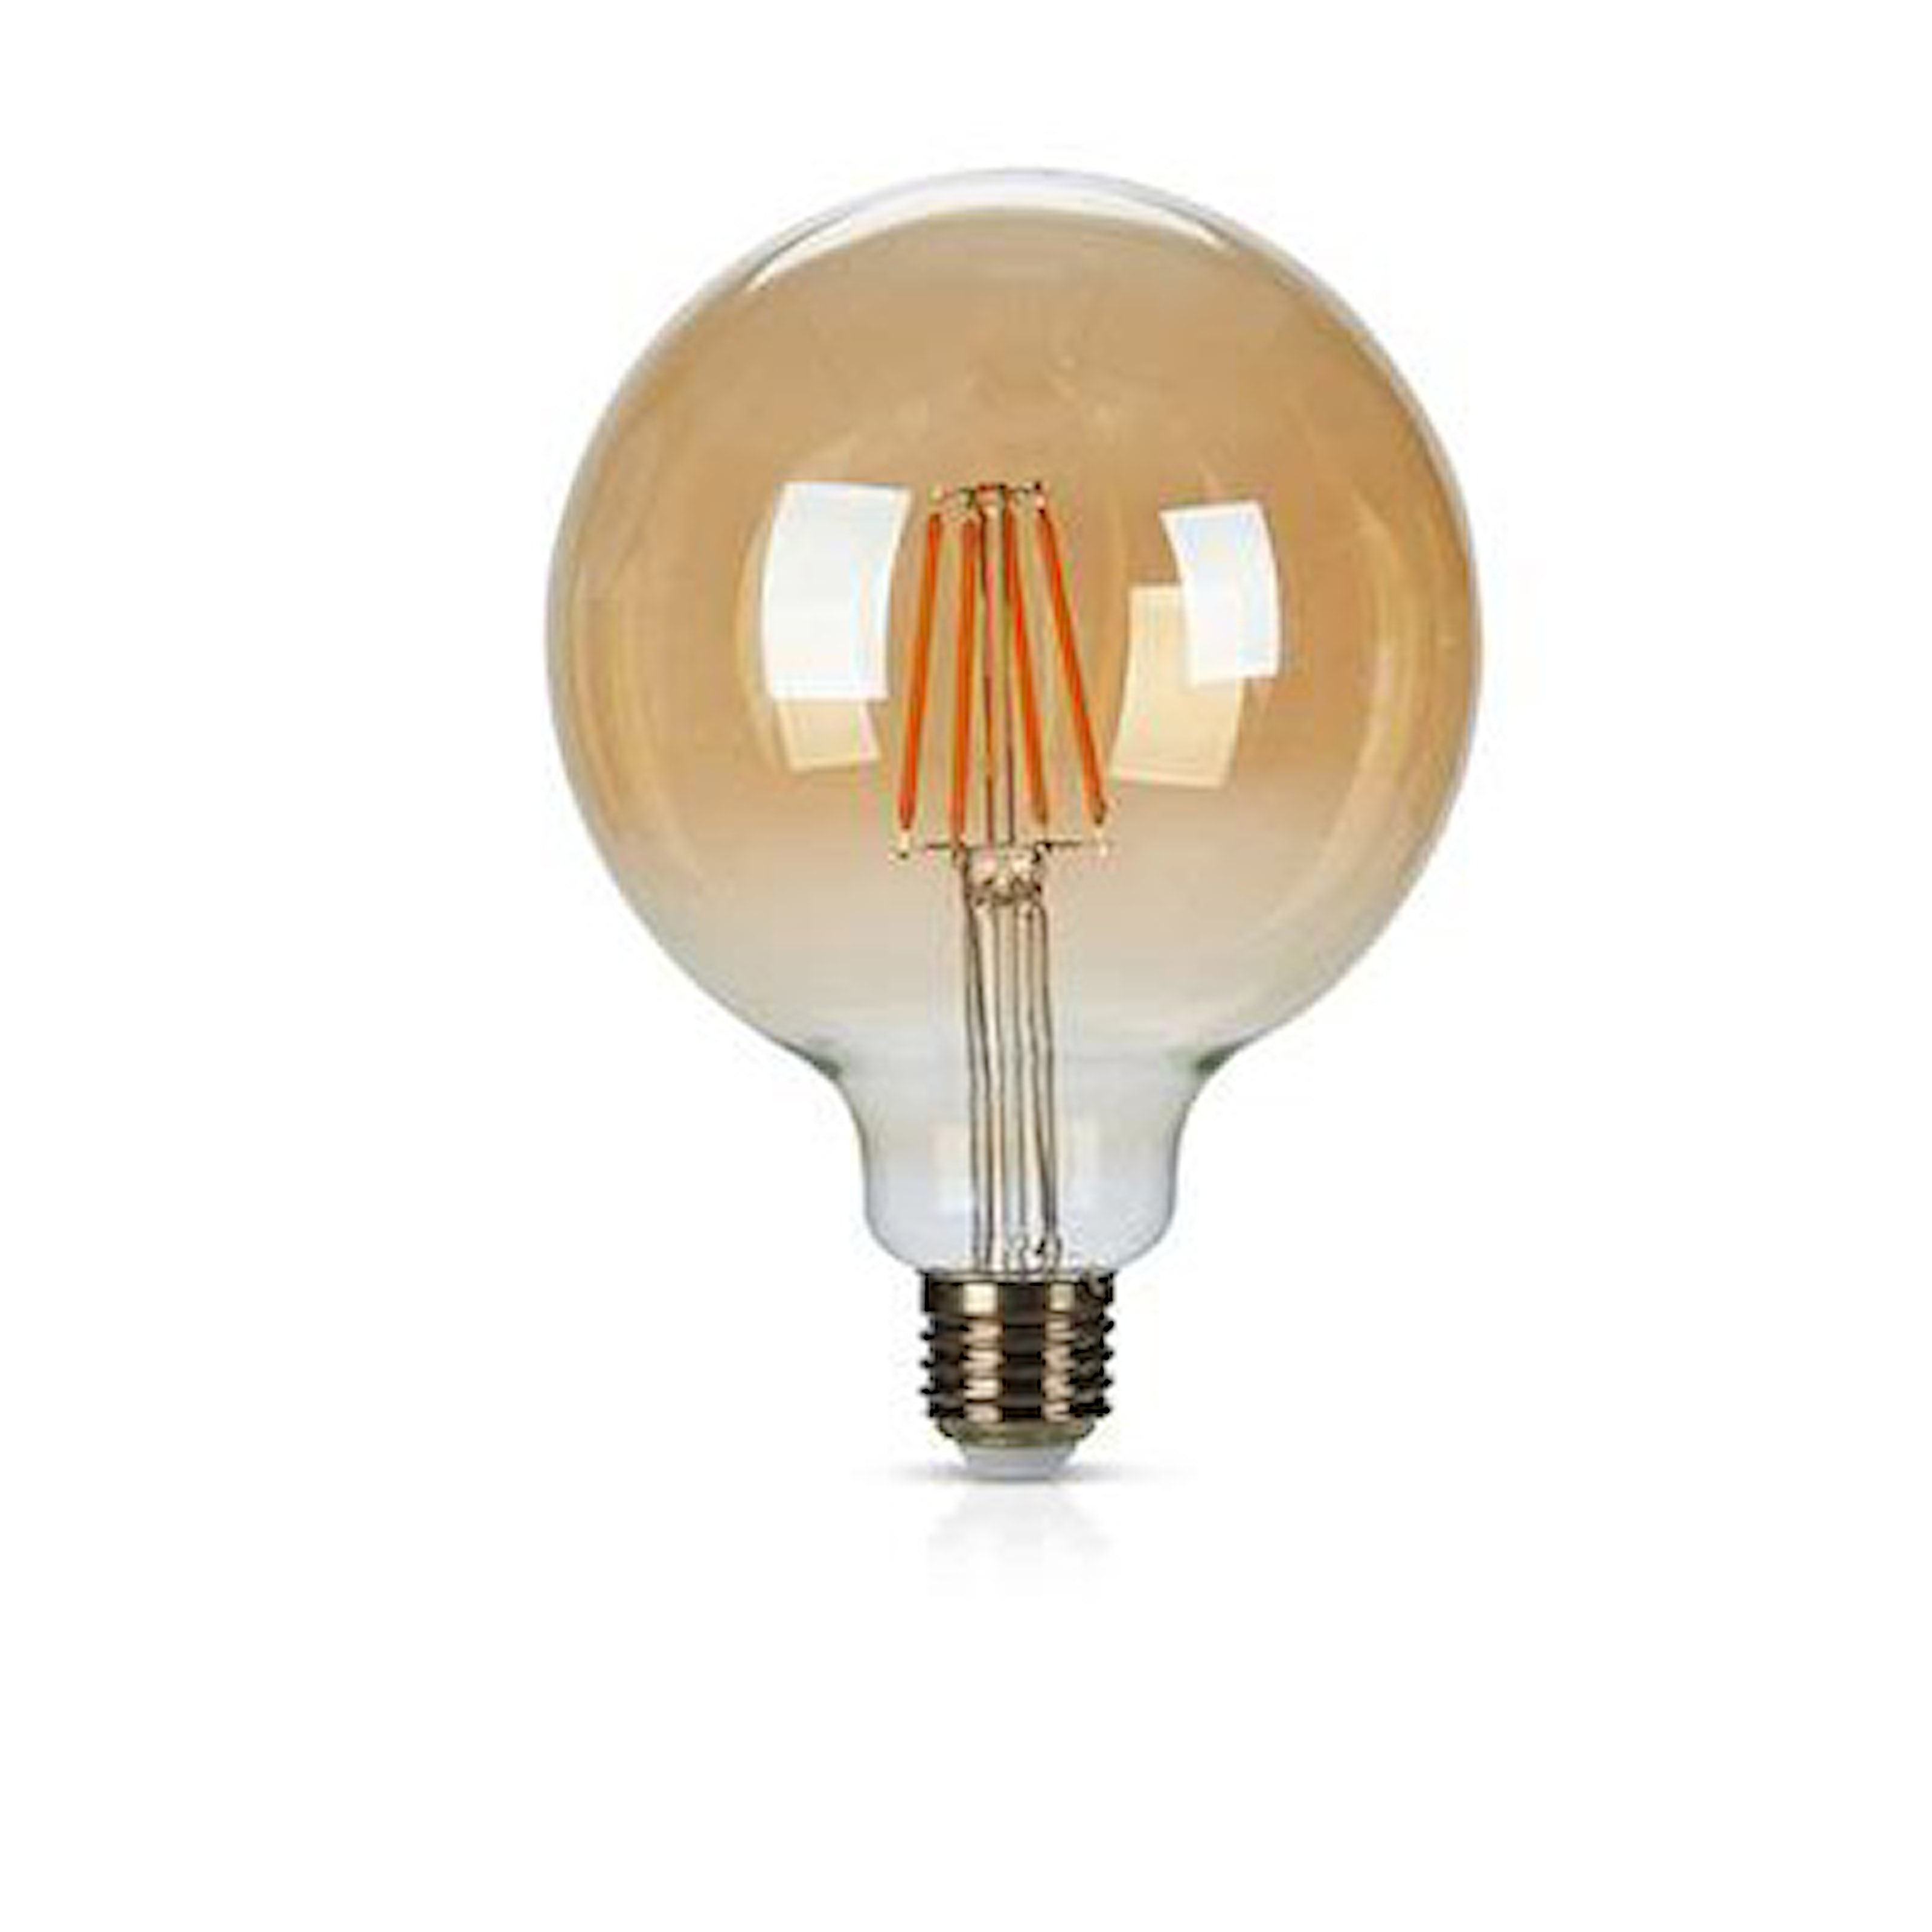 Transparent, Dimmable Bulb, Glödlampa, 1-pack, transparent, ,